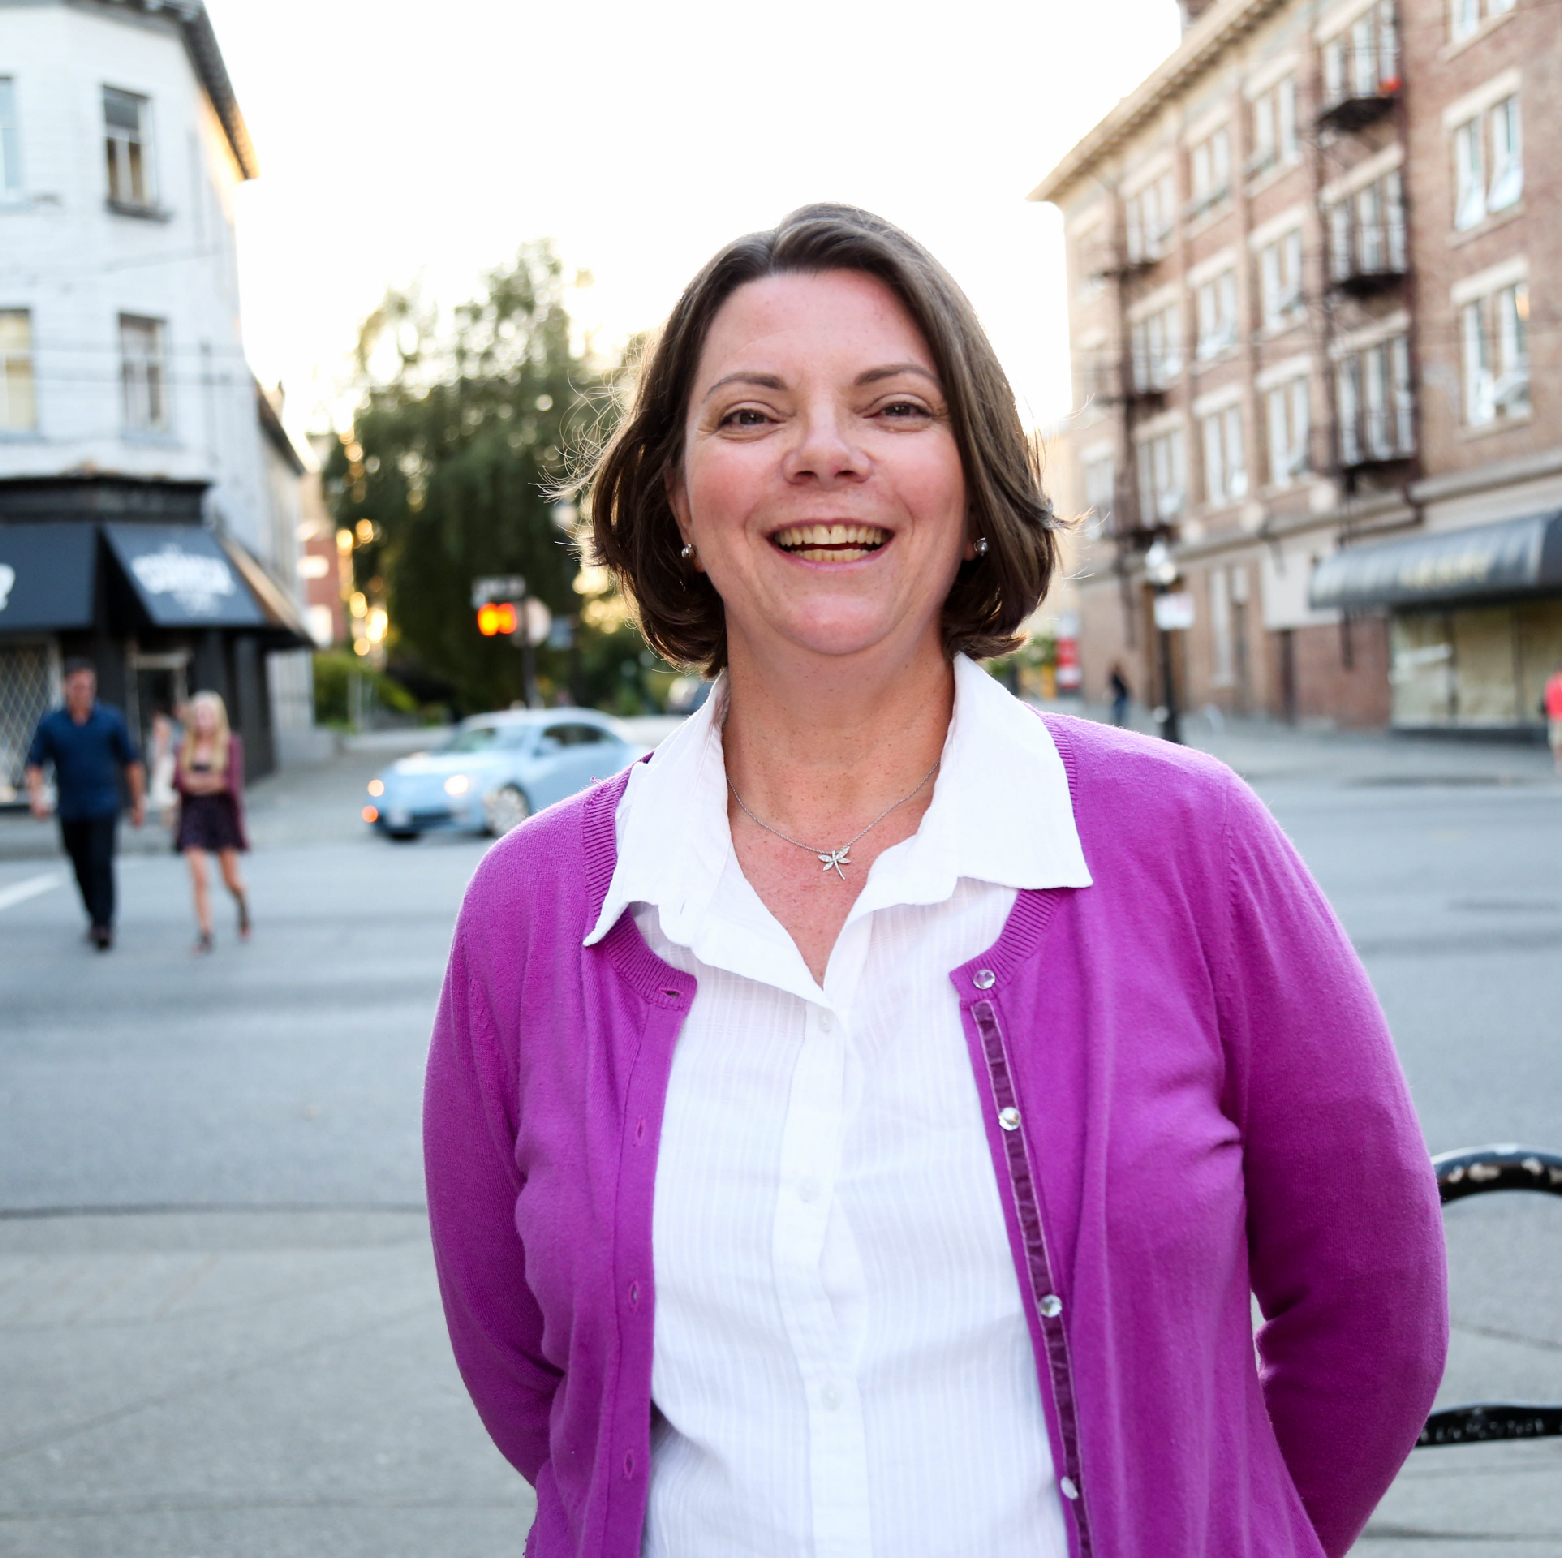 Erica Jaaf Candidate for Vancouver School Board